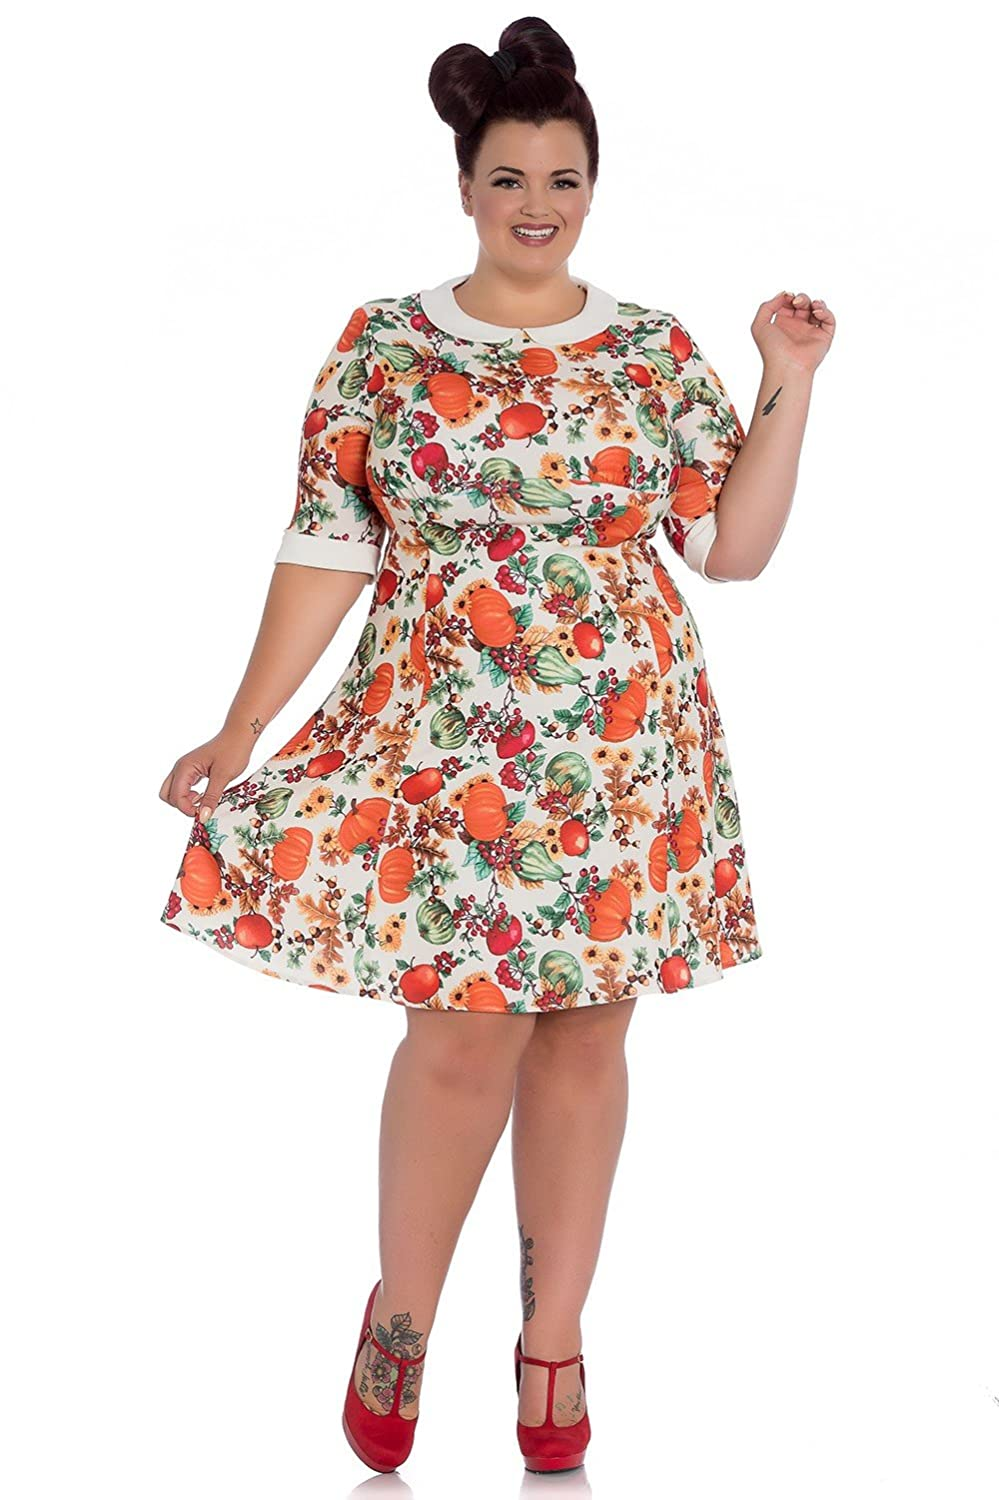 Plus Size Vintage Dresses, Plus Size Retro Dresses Hell Bunny 60s Retro Autumn Pumpkin Berries Mini Dress $59.99 AT vintagedancer.com